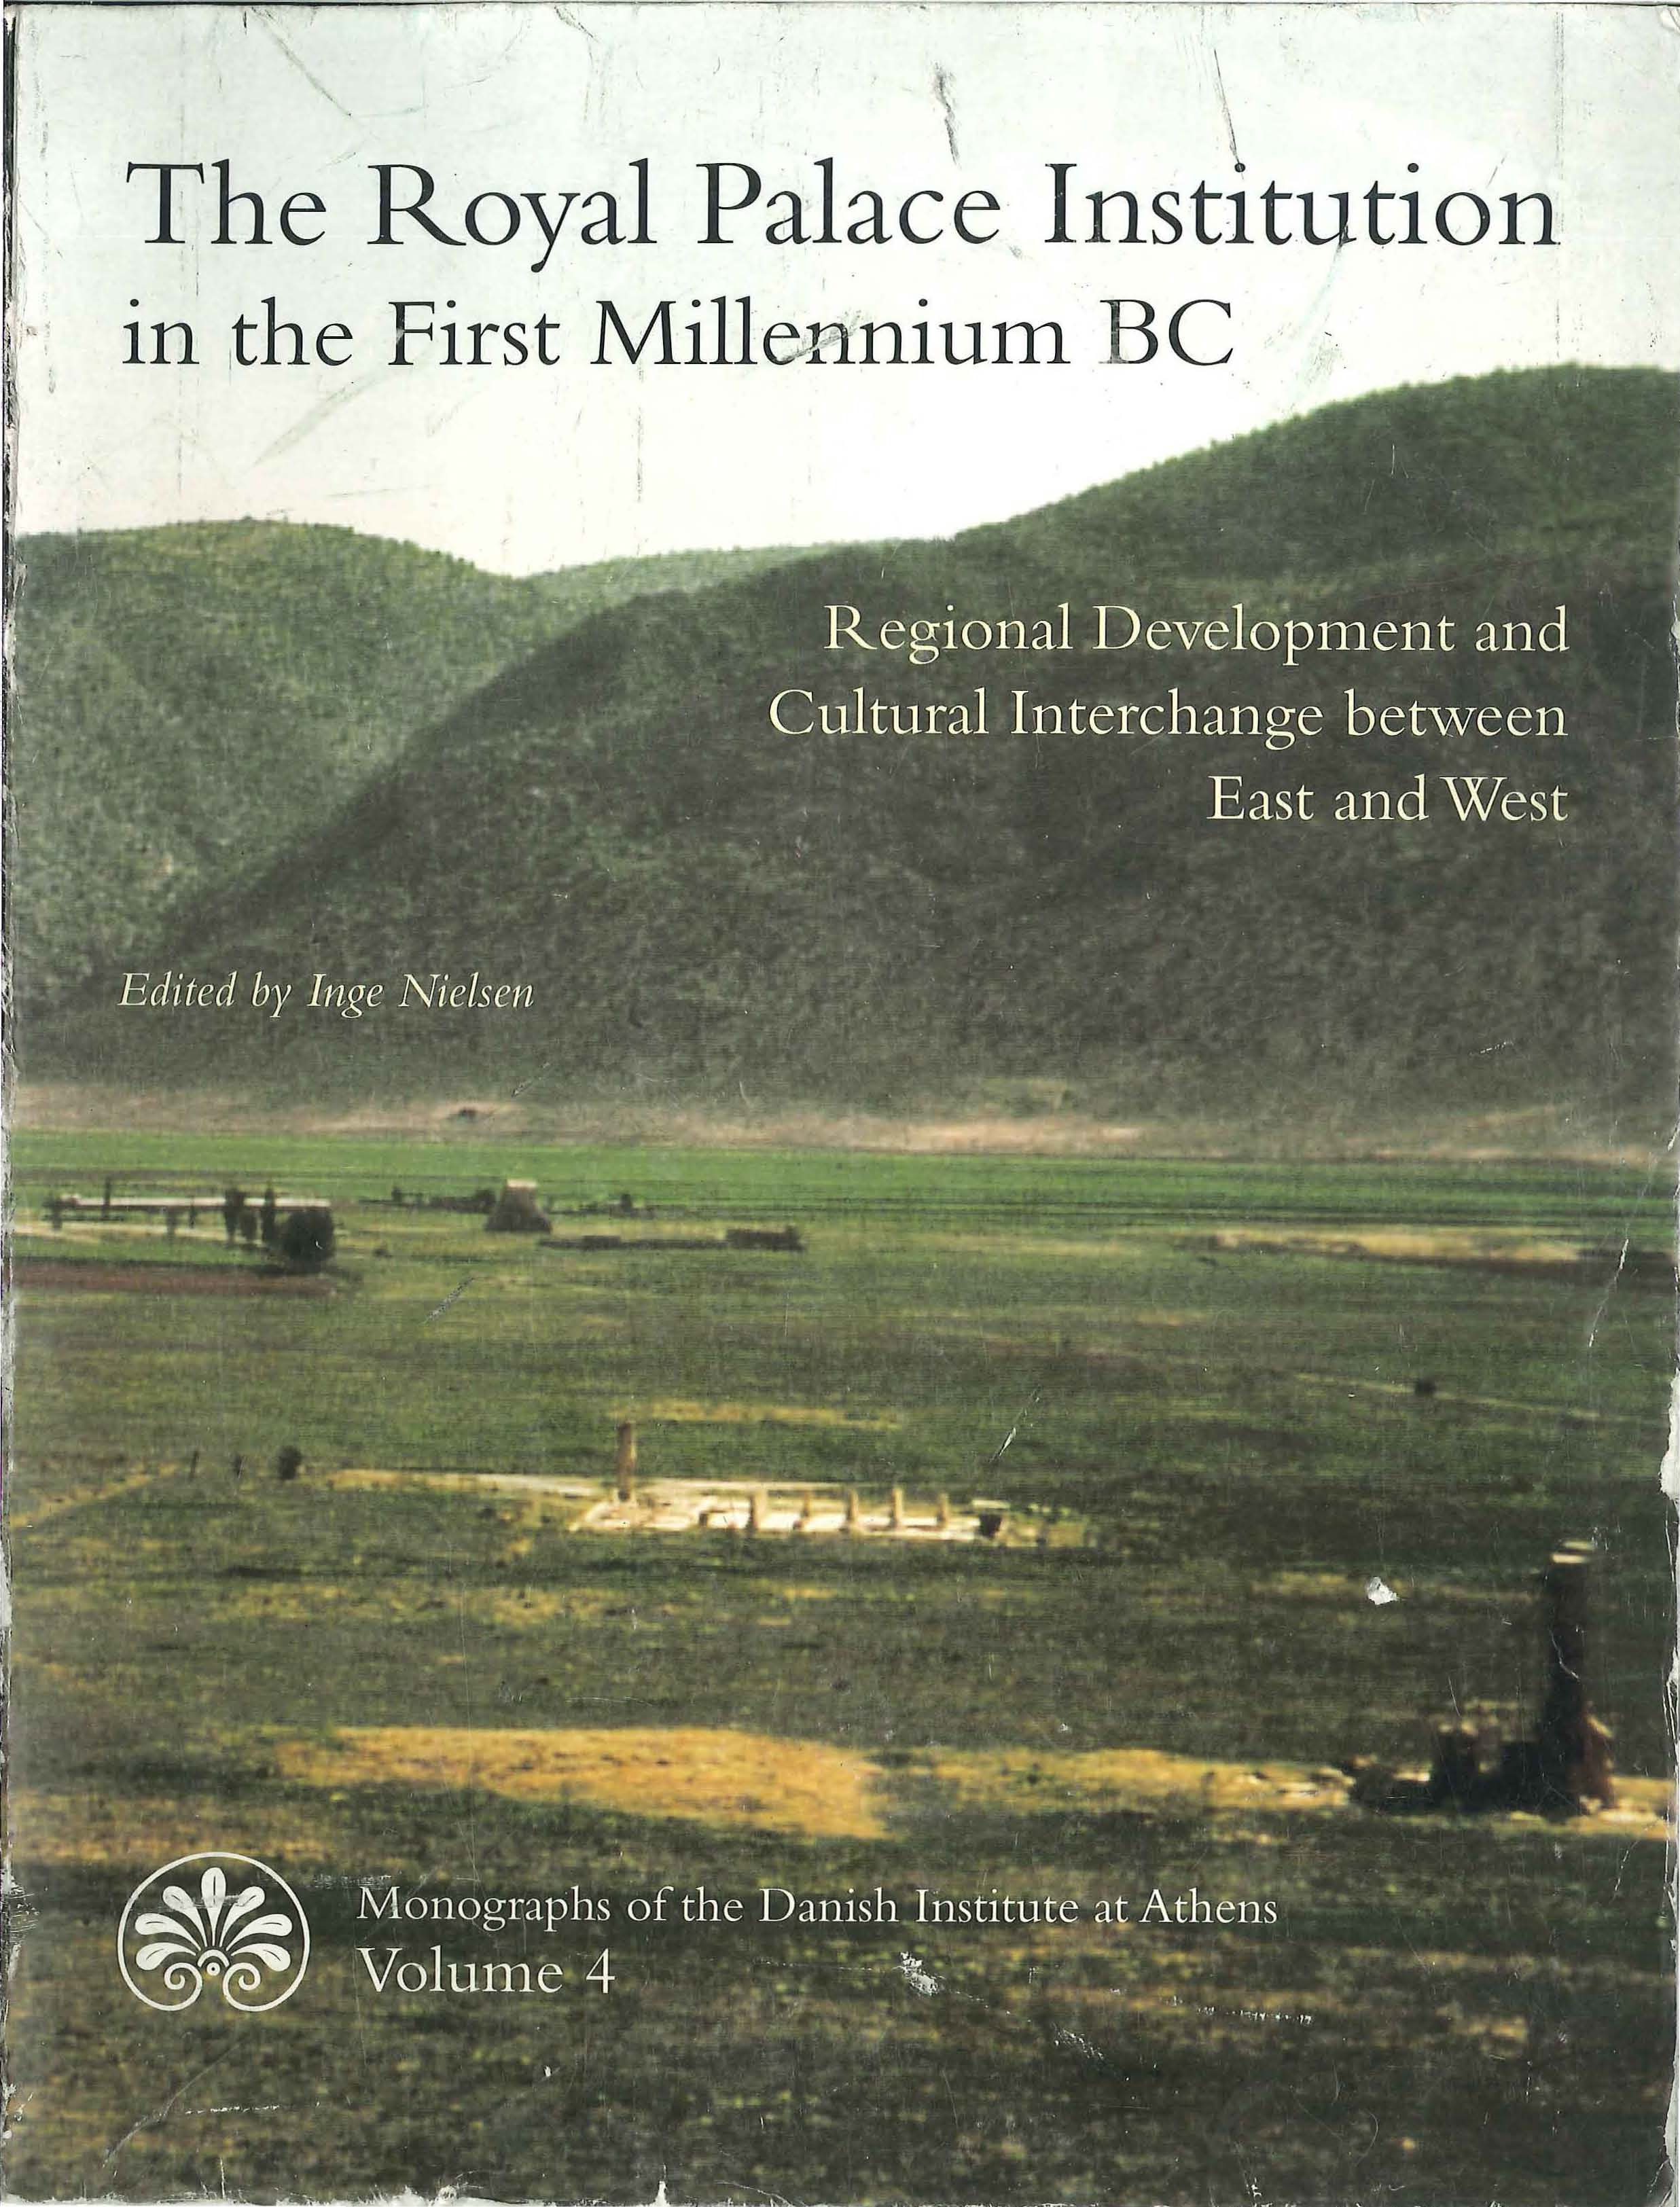 View Vol. 4 (2001): The Royal Palace Institution in the First Millennium BC: Regional Development and Cultural Interchange between East and West